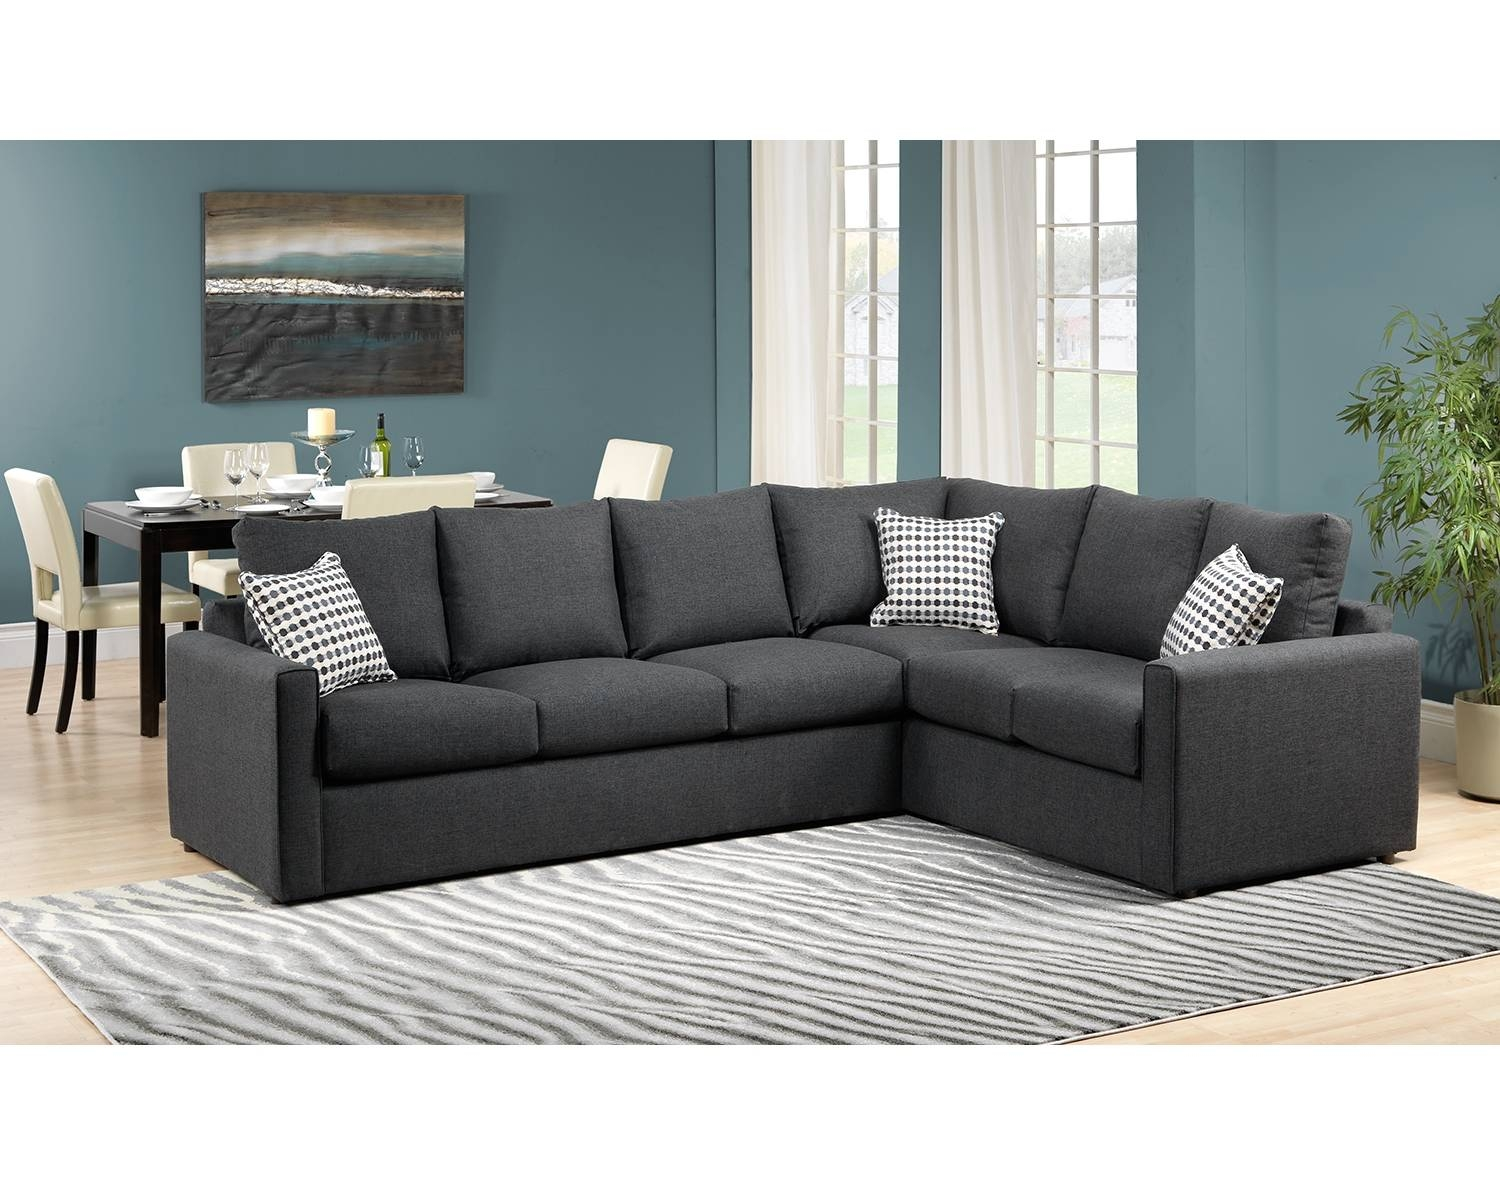 Interior: Individual Sectional Sofa Pieces | Charcoal Sectional intended for Individual Sectional Sofas Pieces (Image 7 of 15)